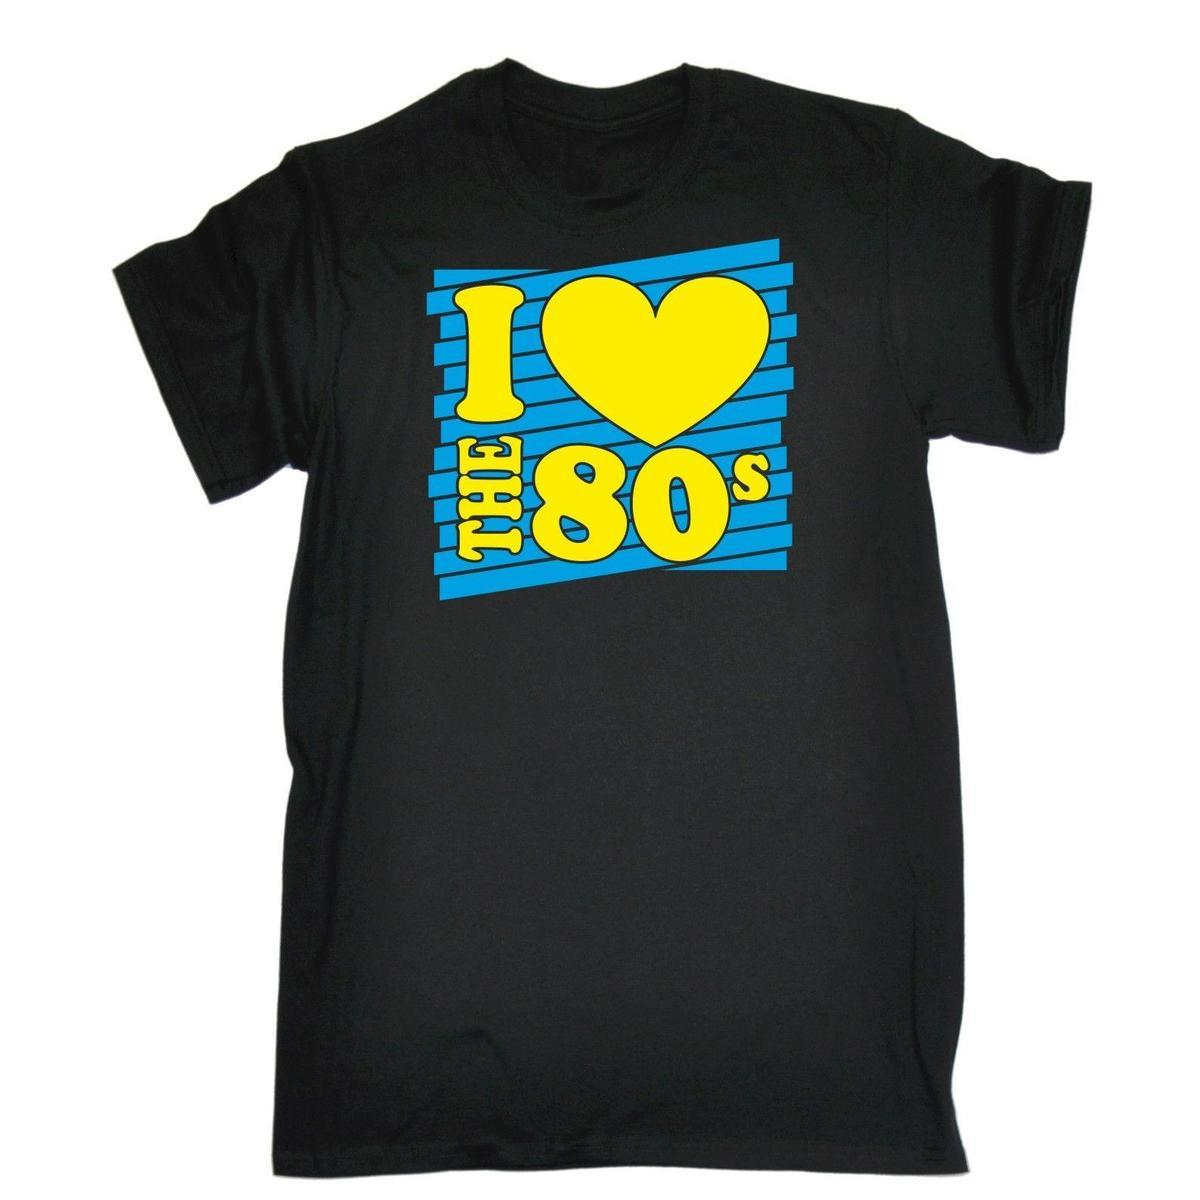 548b018bb I Heart The 80s T SHIRT Costume Retro Fancy Dress Disco Eighties 80'S  Birthday Shirts Online T Shirt Creator From Yuxin0007, $15.53| DHgate.Com